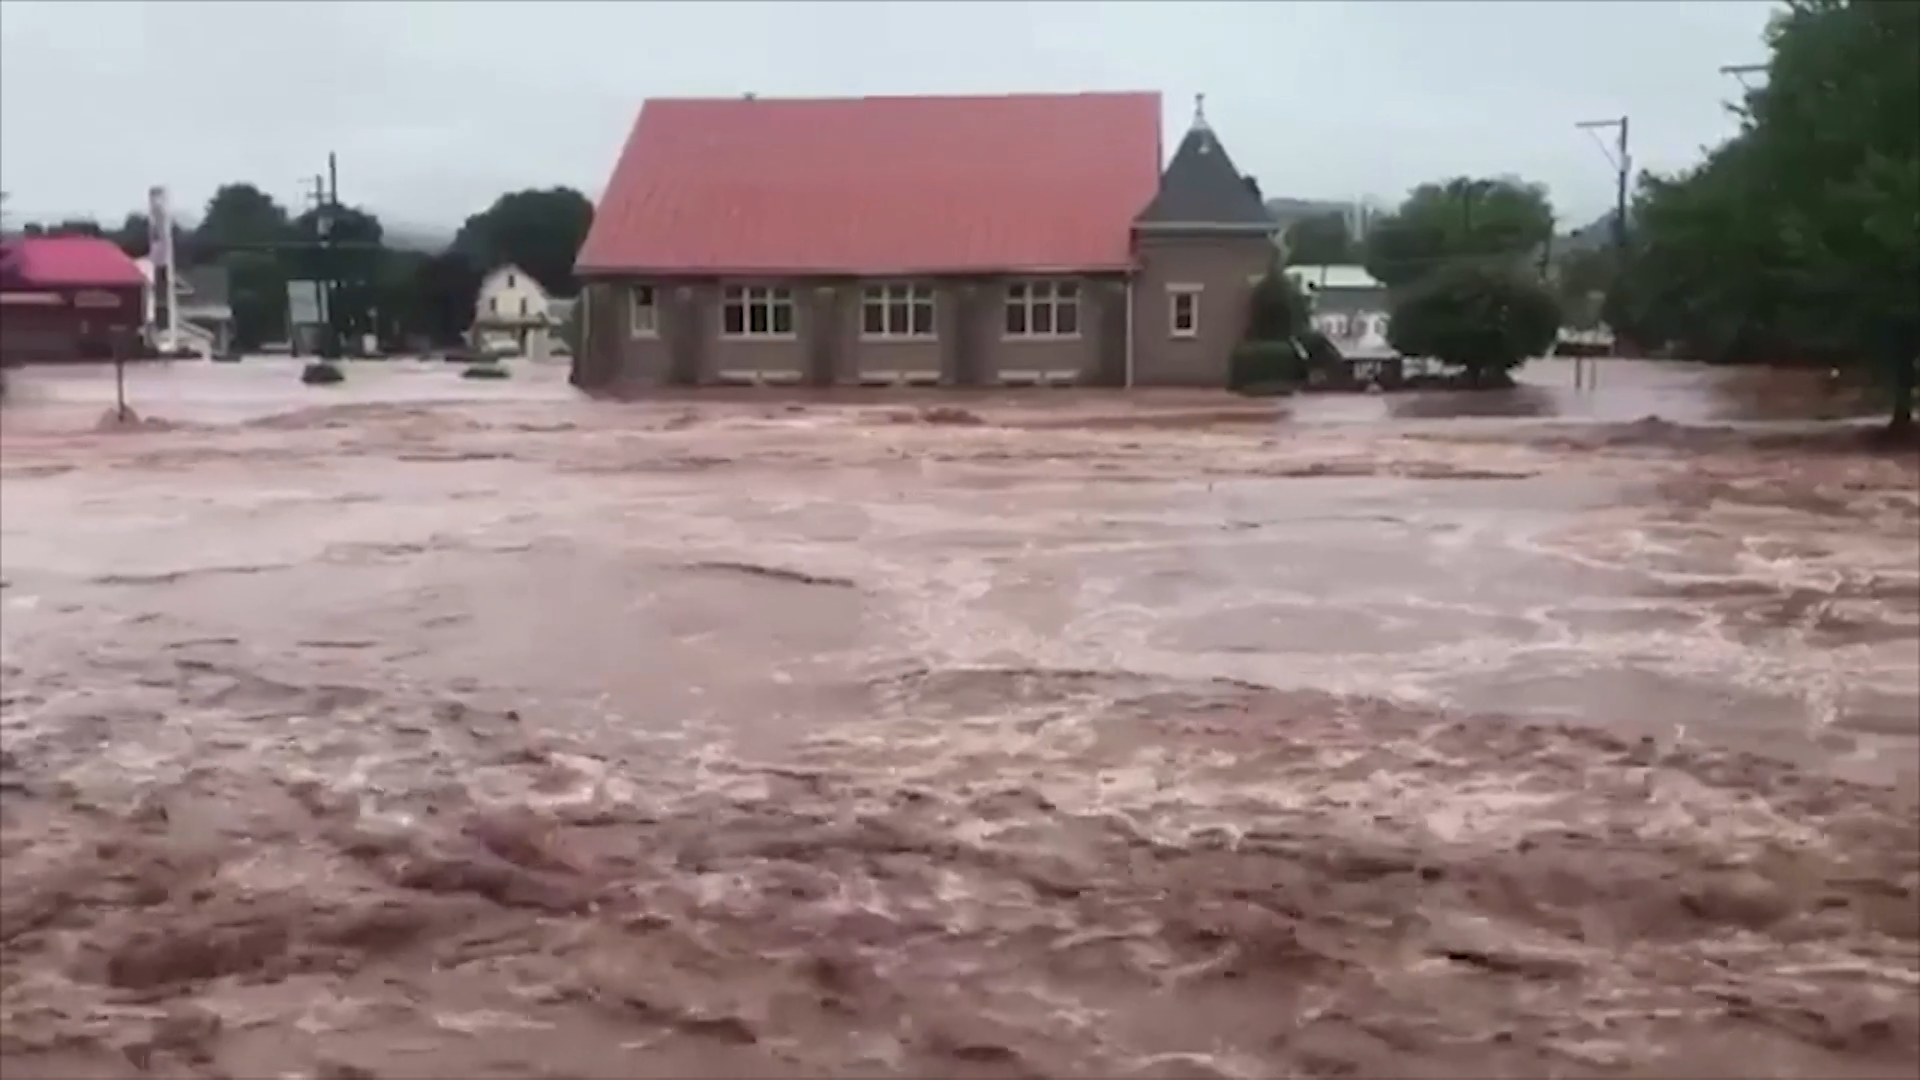 Videos show floods swamping interstate, carrying away cars in Mid-Atlantic   Delaware Online